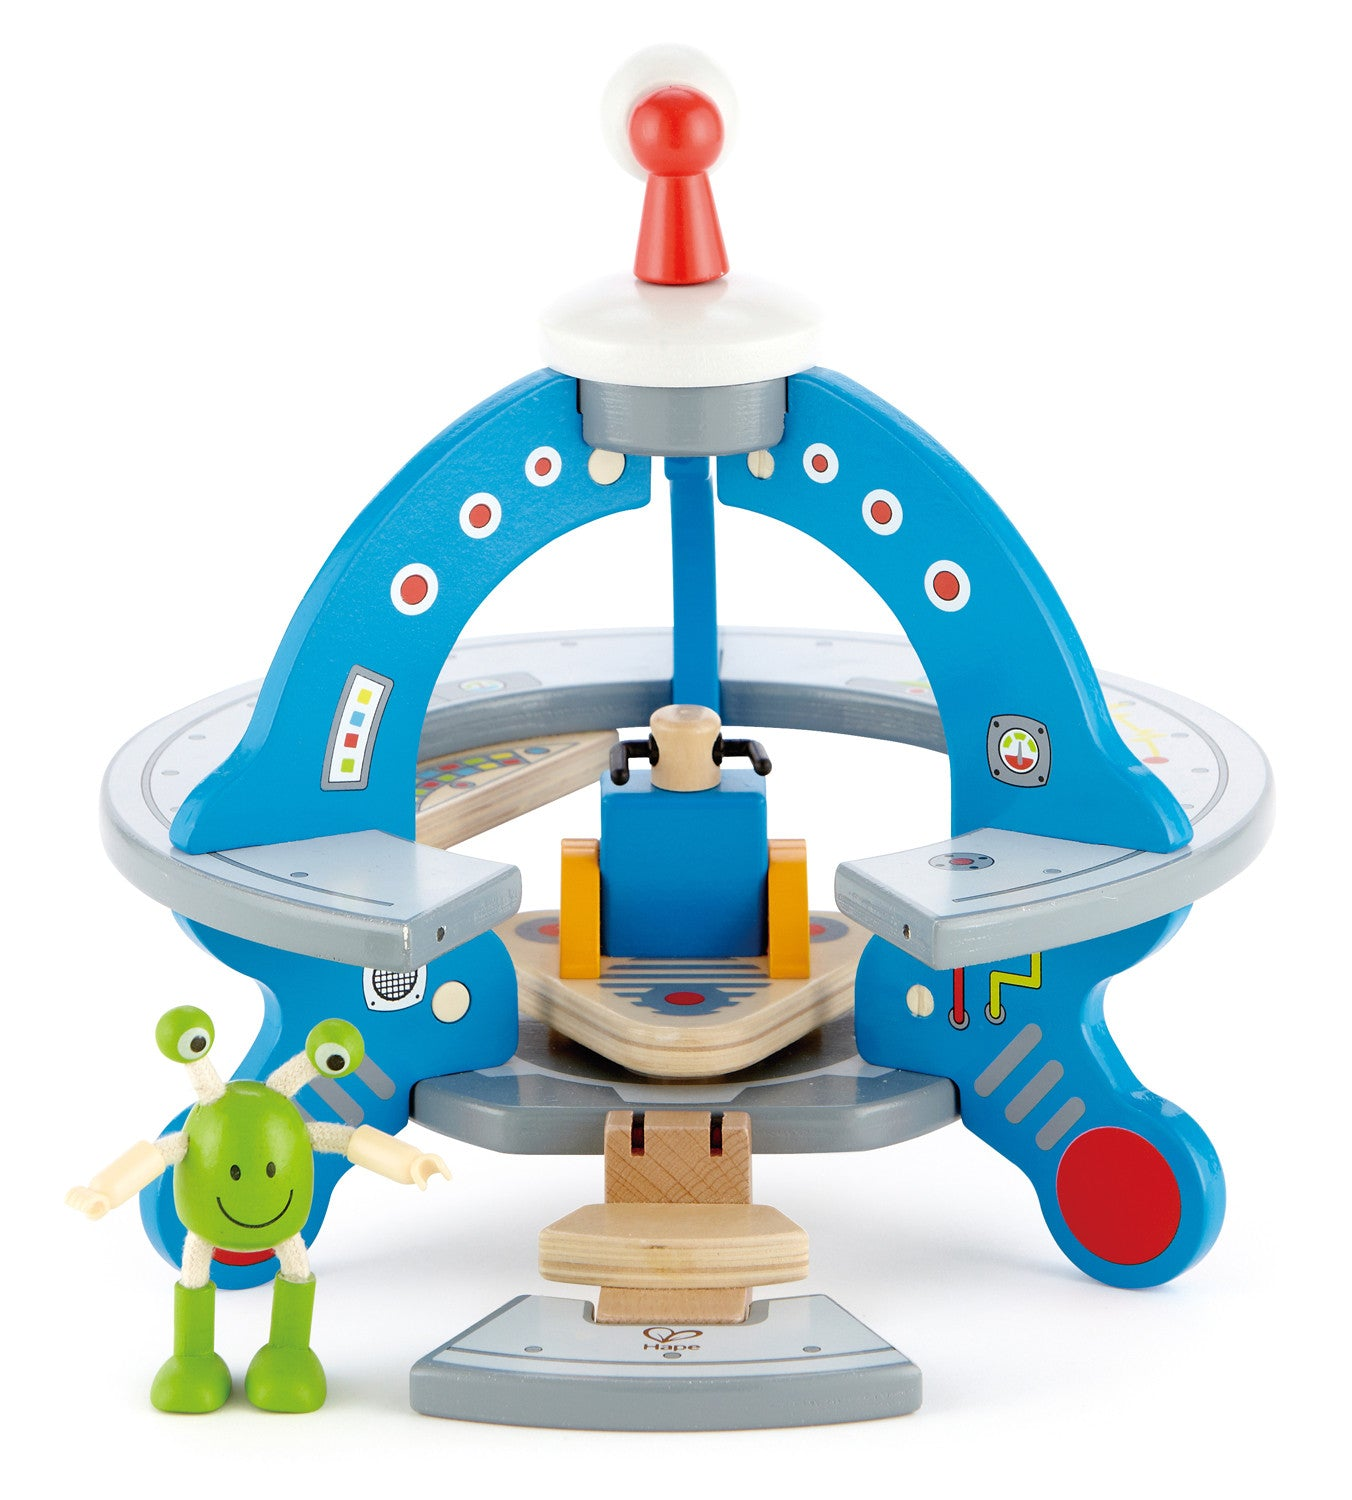 Hape Wooden Toy - UFO - How I Wonder.co.uk - 1